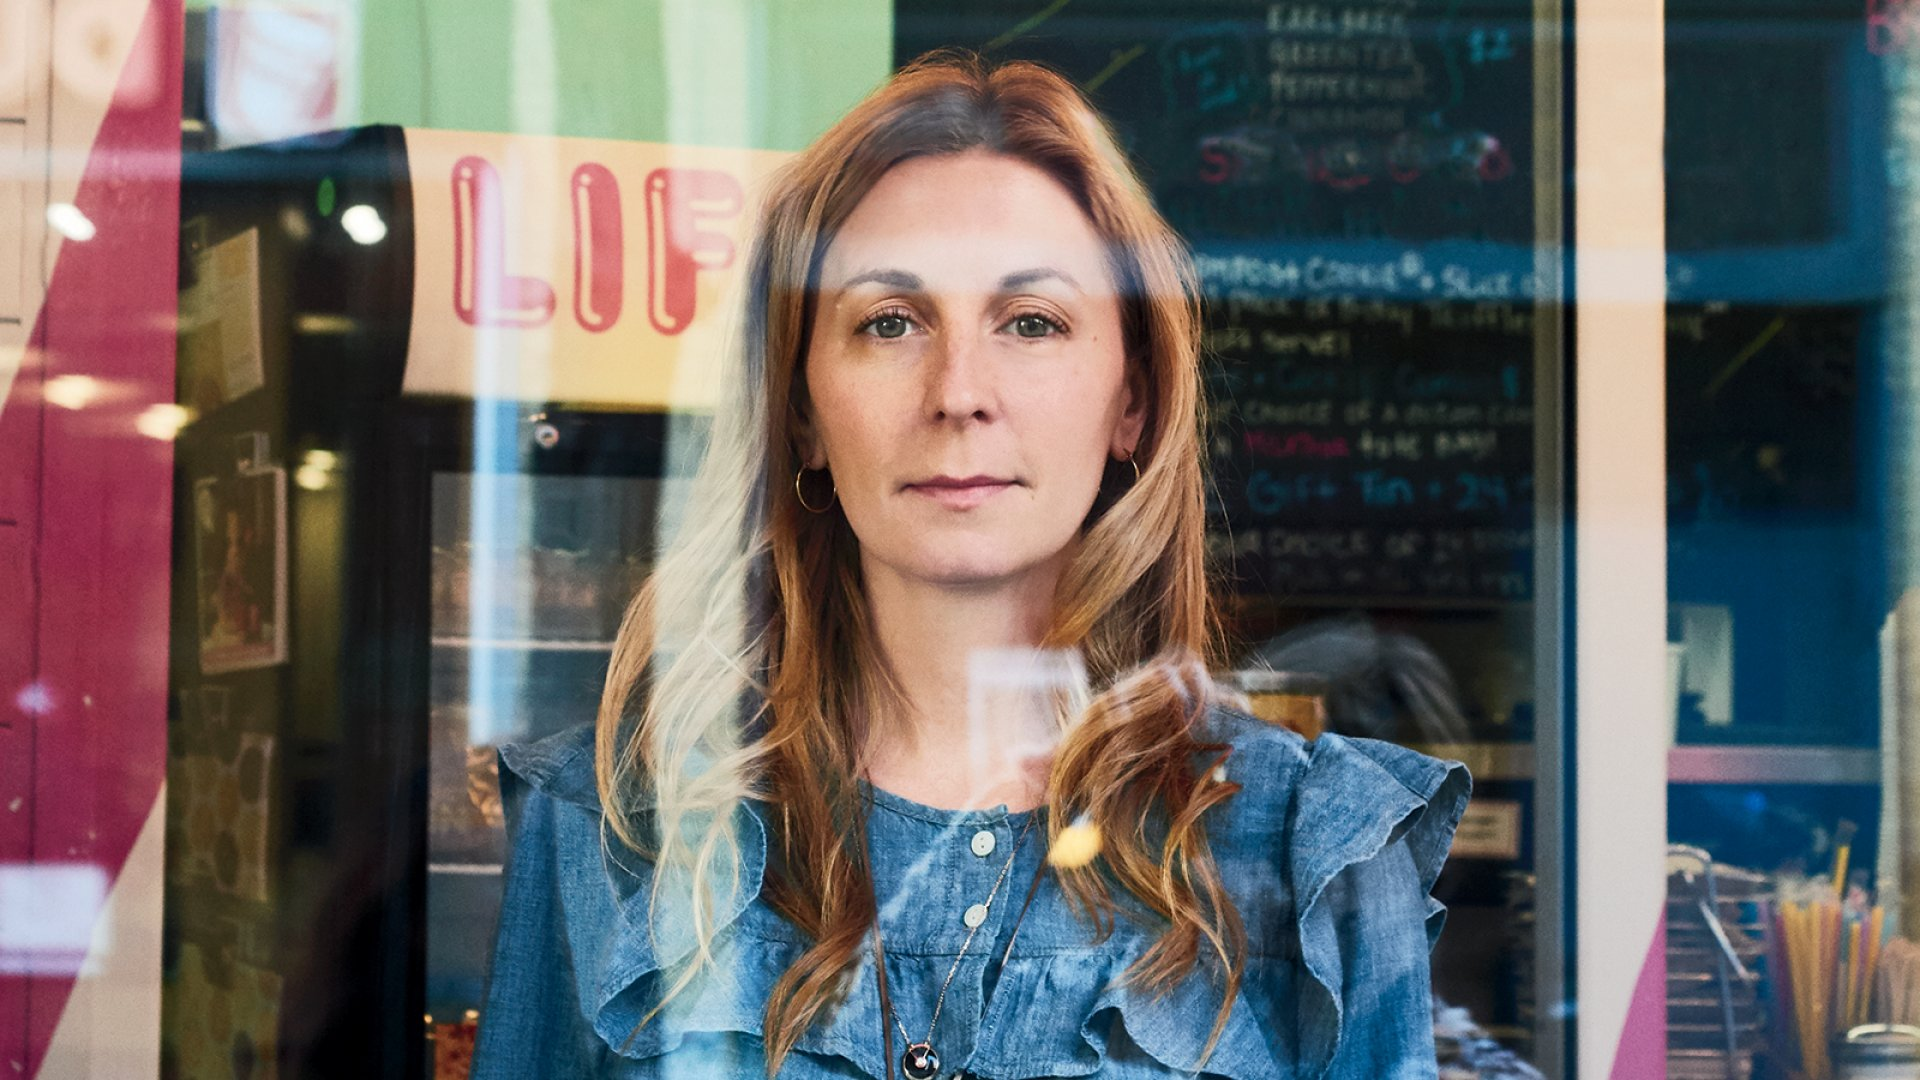 Milk Bar founder and CEO Christina Tosi, who studied engineering, inside her bakery chain's location in New York City's West Village.